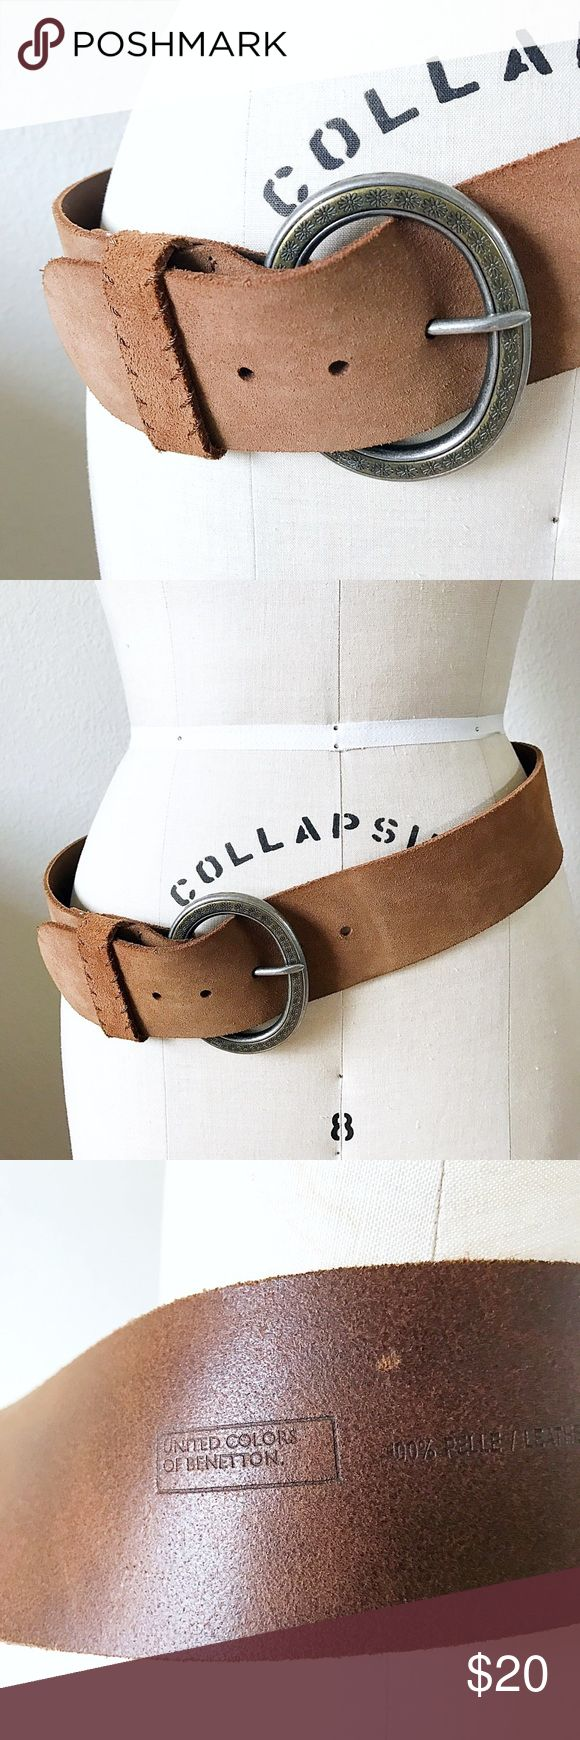 UNITED COLORS OF BENETTON LEATHER BELT Beautifully made brown (genuine) leather belt, with lovely flower inscribed detail on the belt buckle. Size M, approx. 41in. from end to end. Vintage Accessories Belts